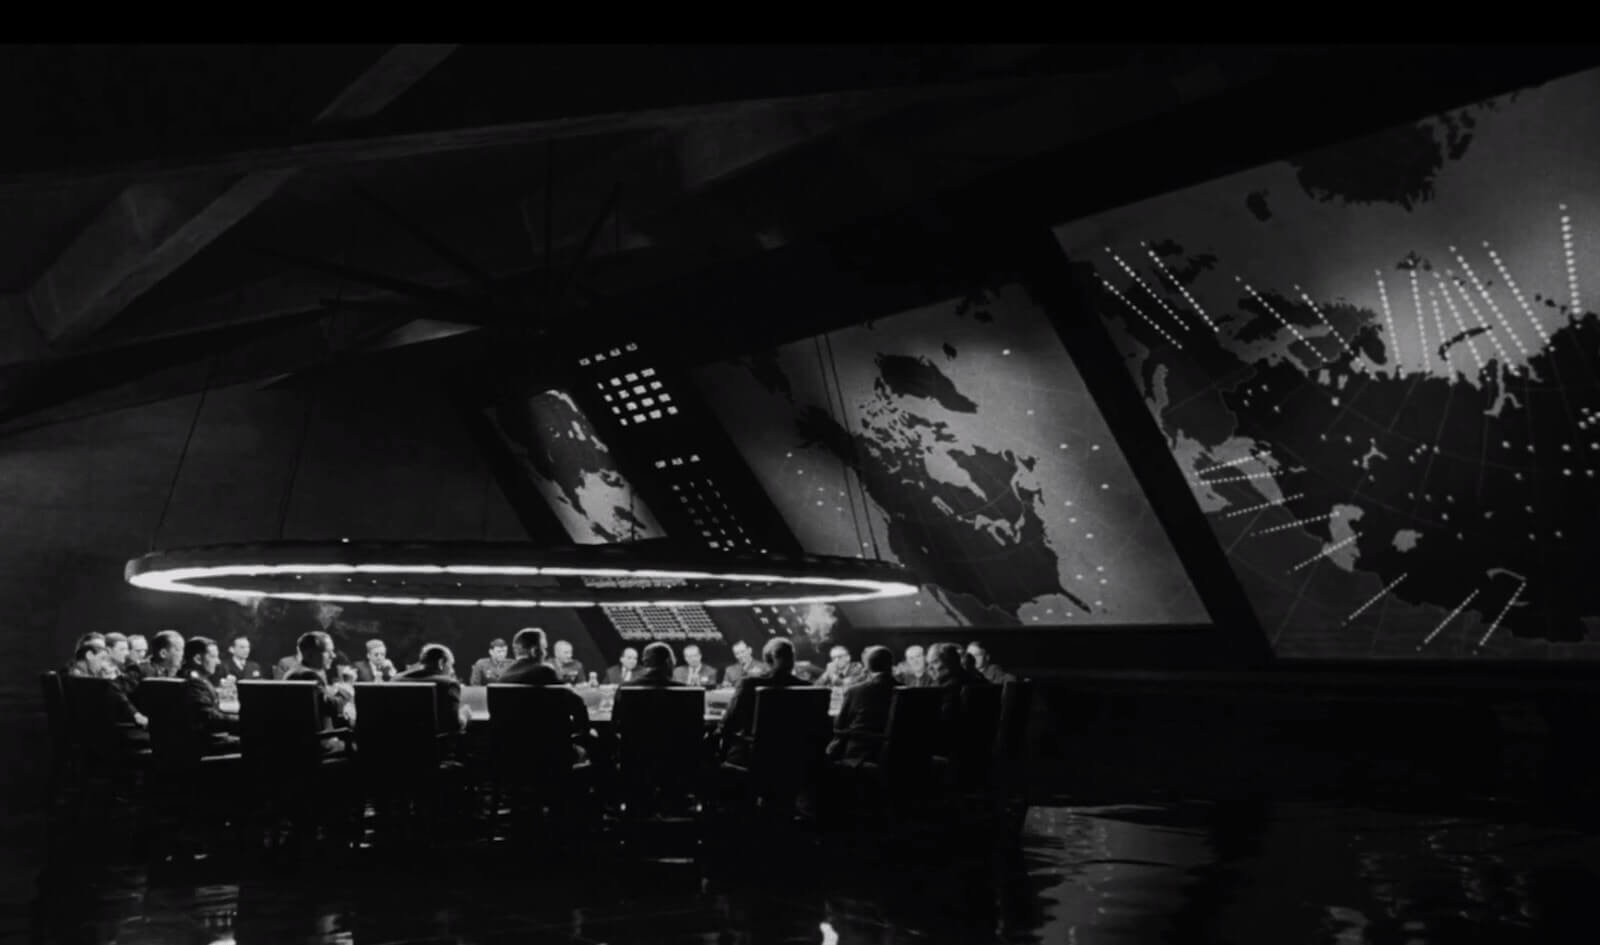 Best Stanley Kubrick Movies - Kubrick Set Design - Dr Strangelove War Room